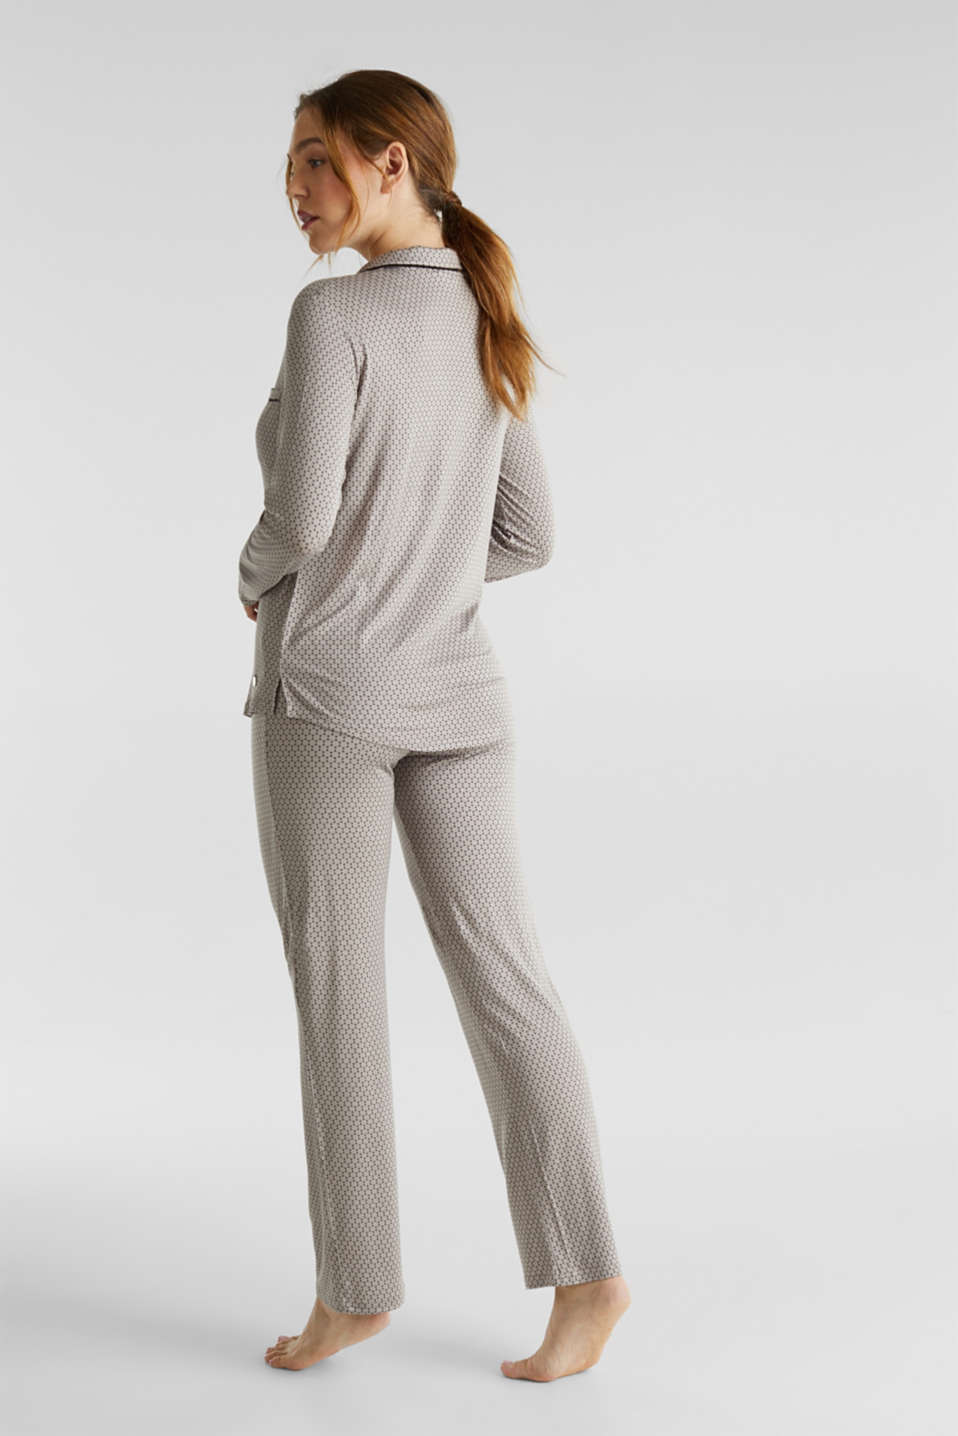 Stretch jersey pyjamas with a graphic print, LIGHT TAUPE, detail image number 1